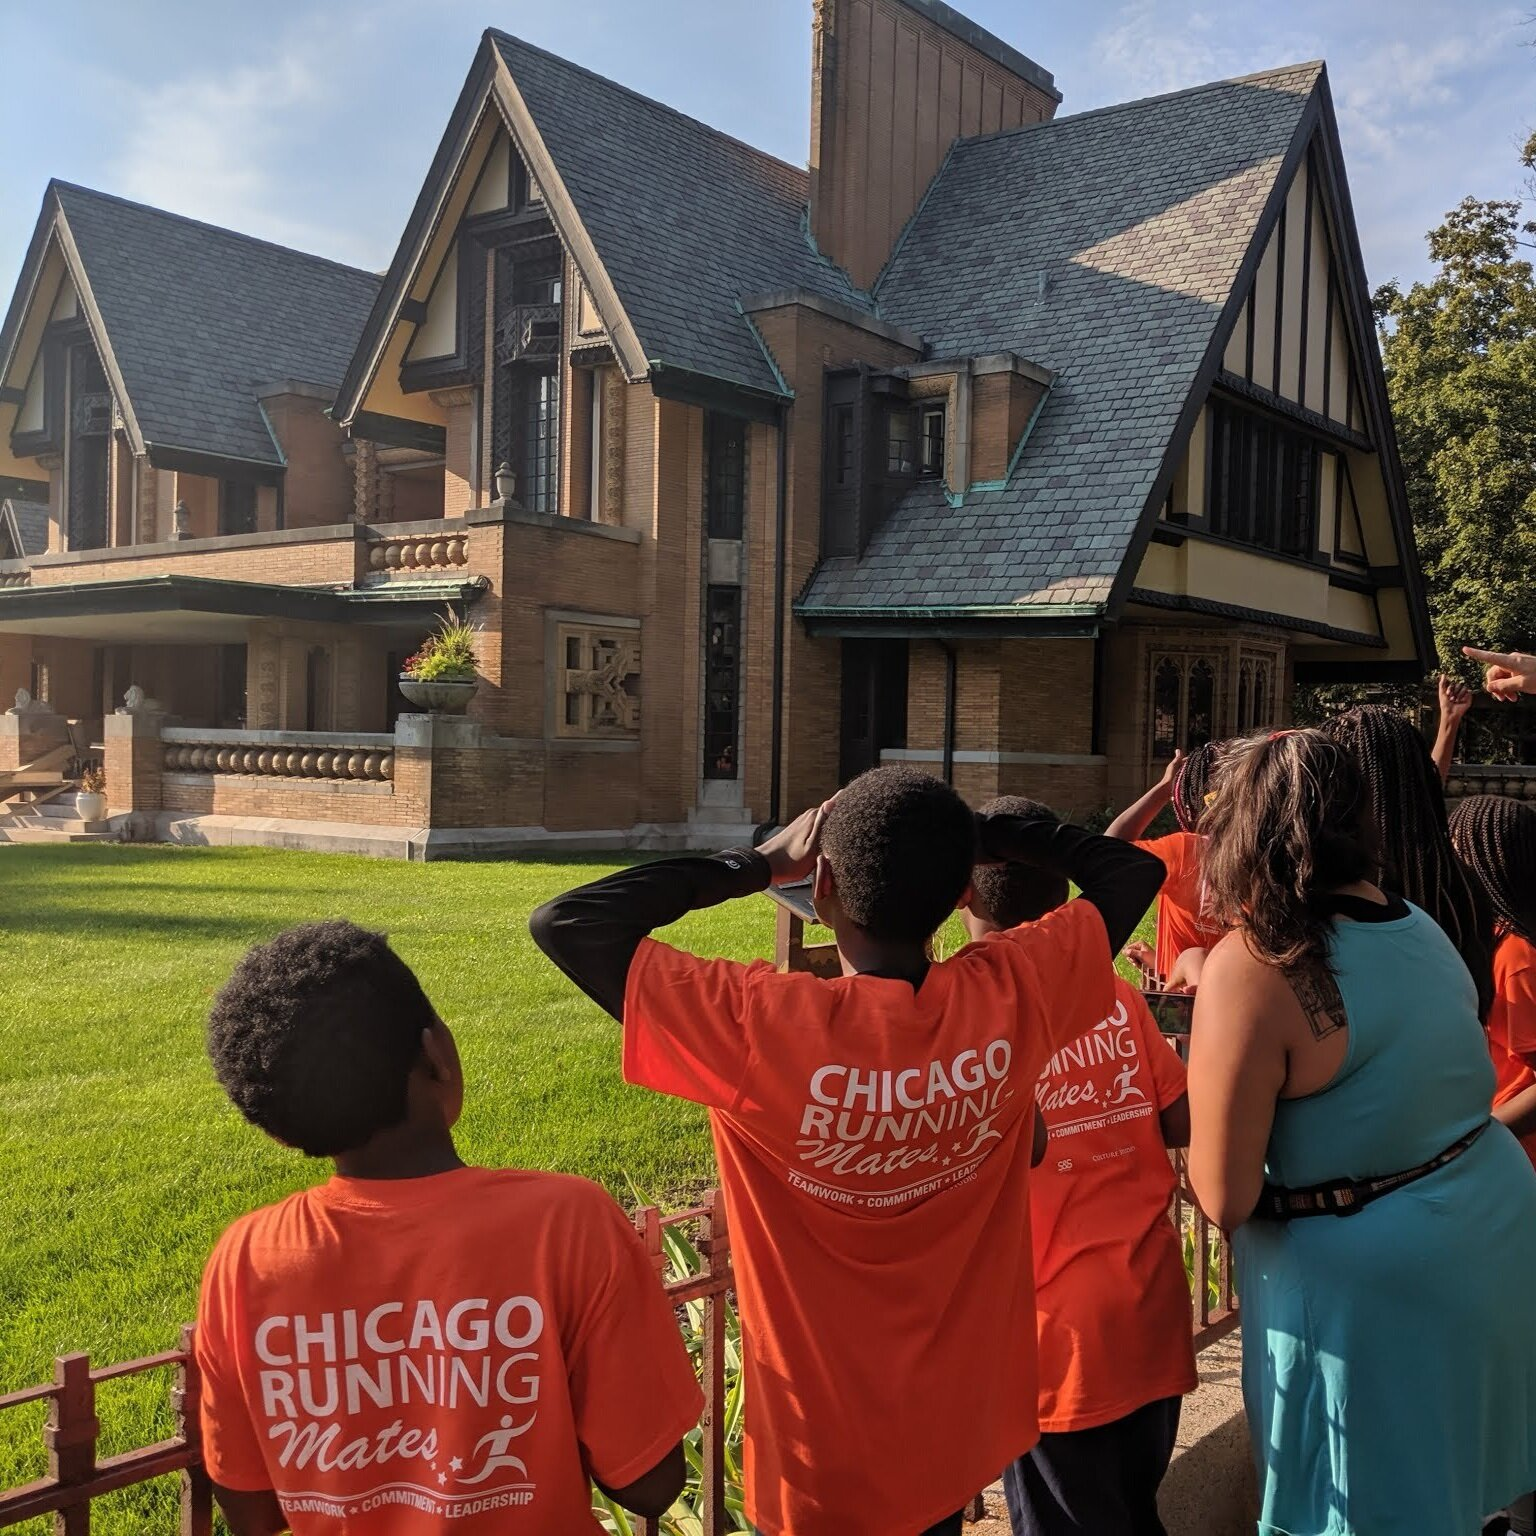 Frank Lloyd Wright Architecture Tour with Peter Sagal - Sep 2019